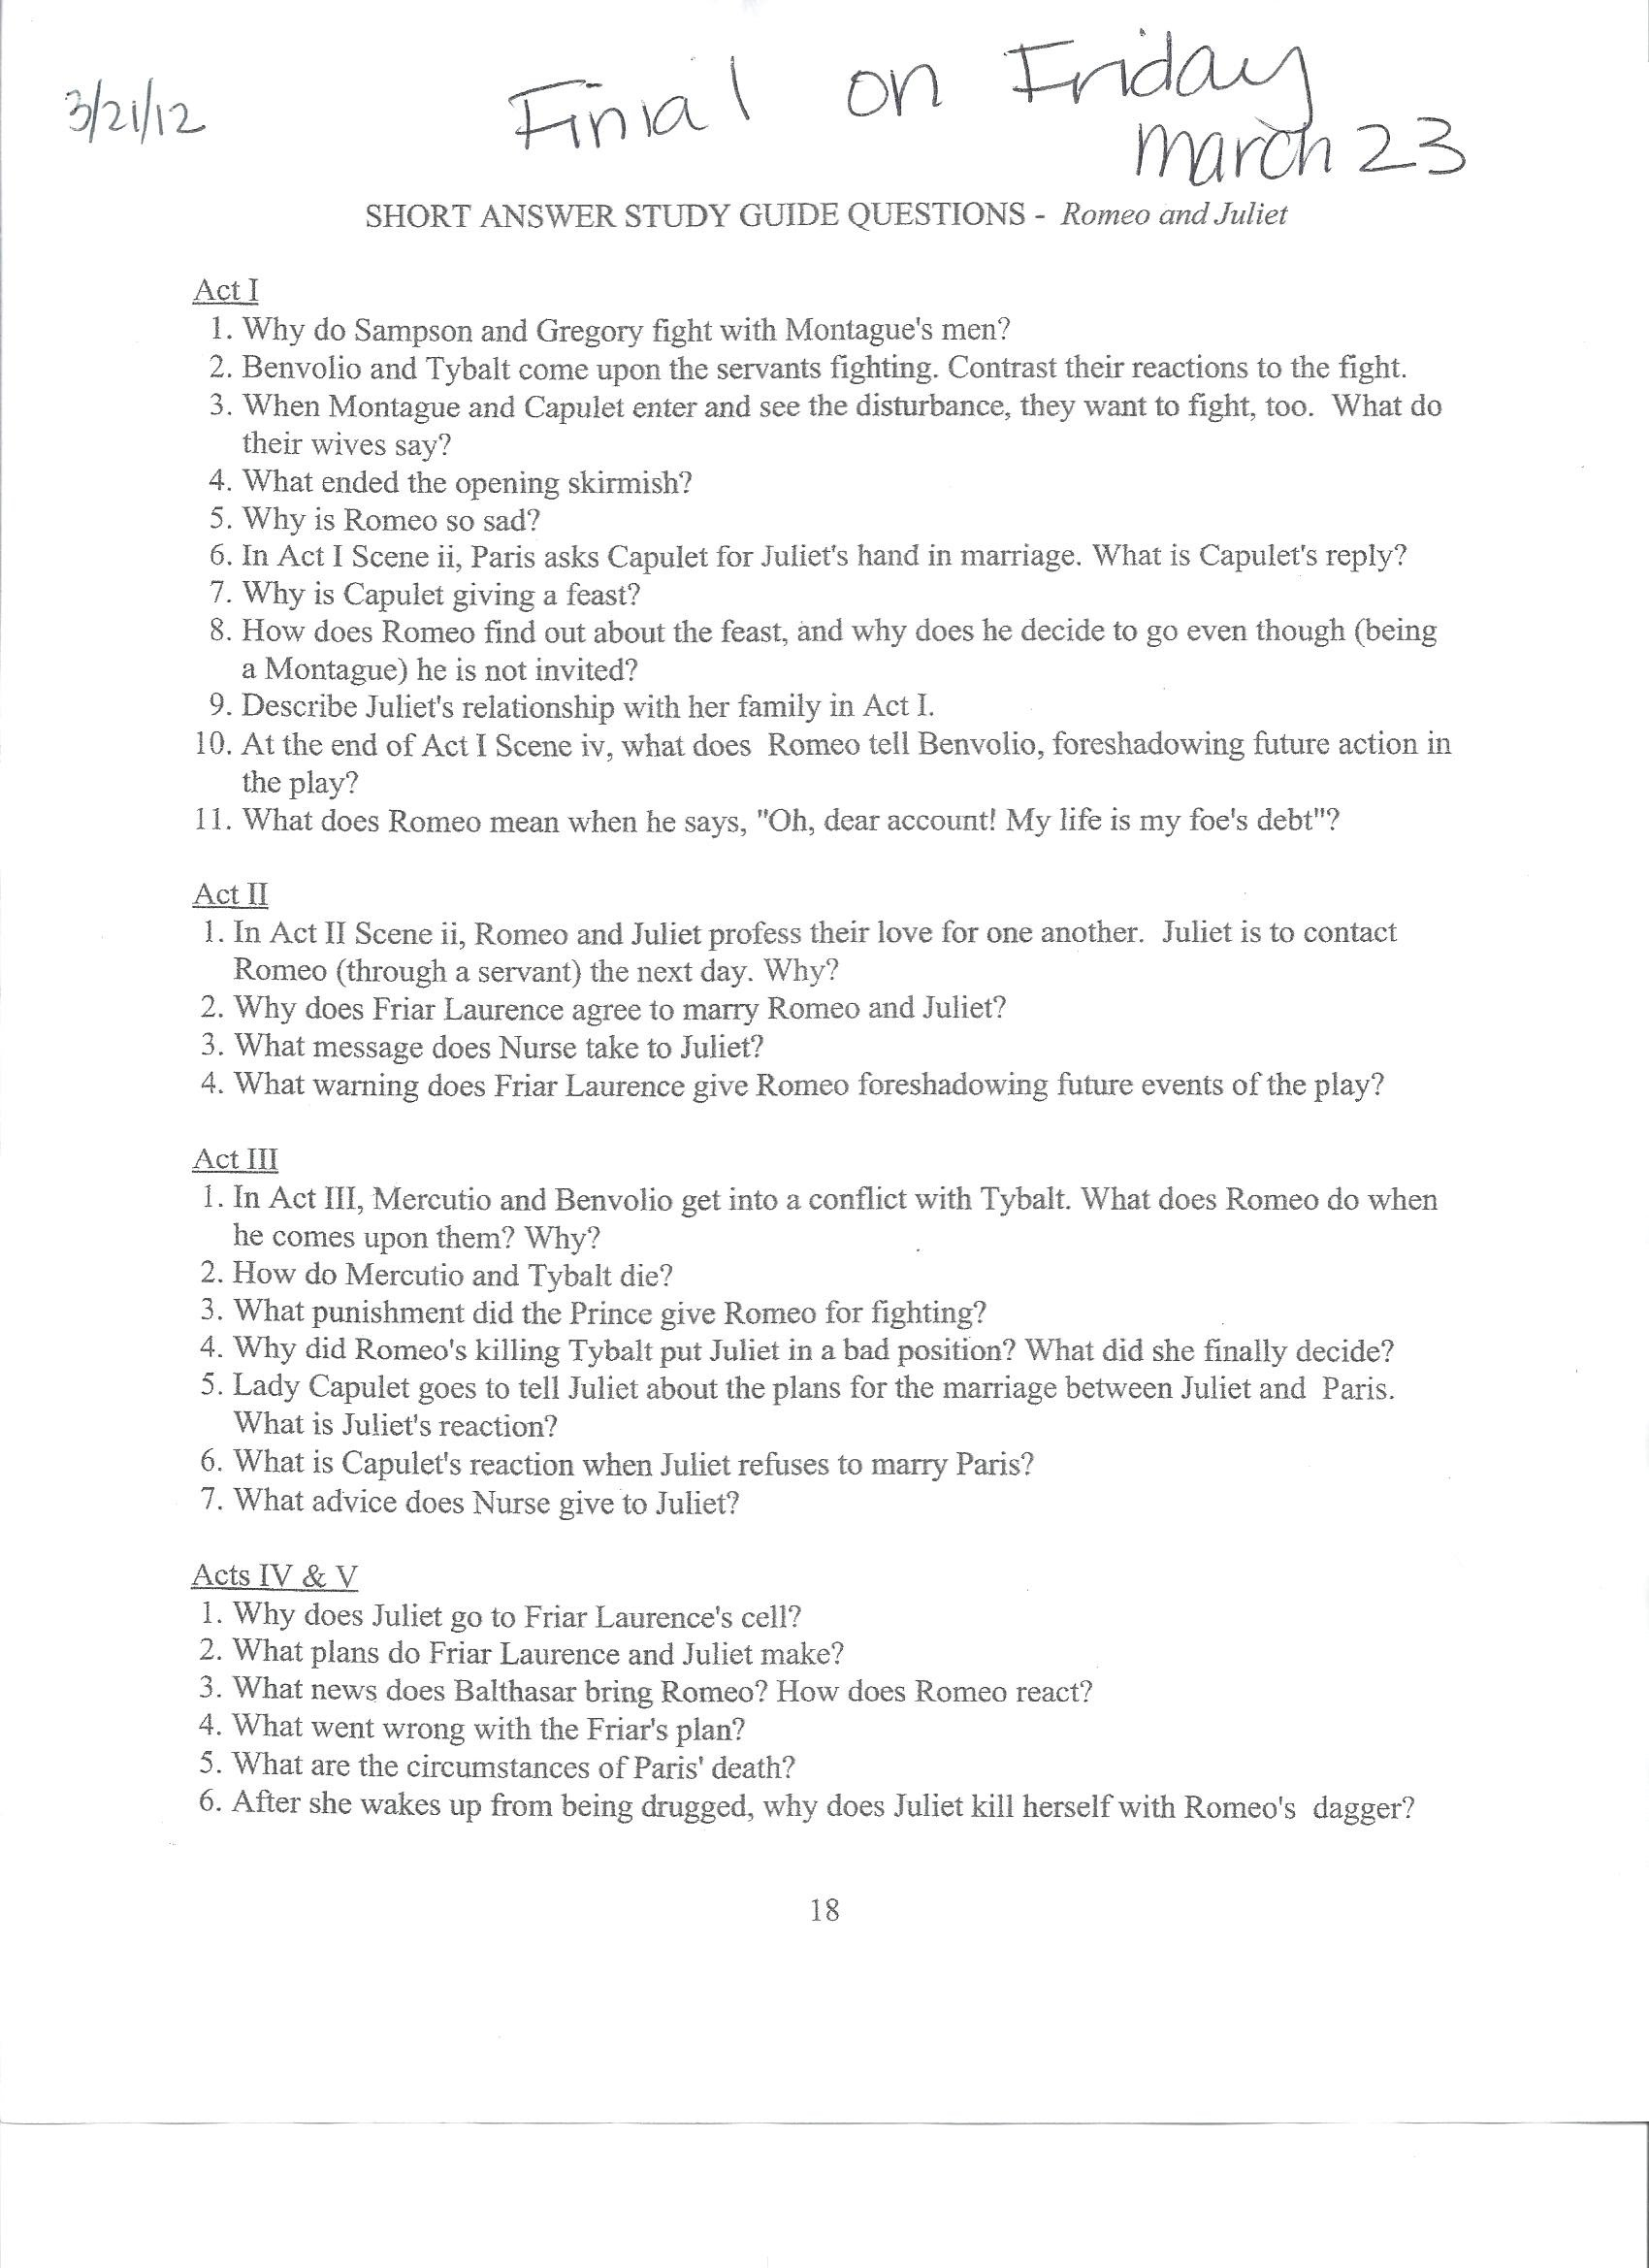 essay romeo and juliet romeo and juliet theme of family paragraph  romeo and juliet essay outline essay for romeo and juliet romeo romeo and juliet essay ideasromeo